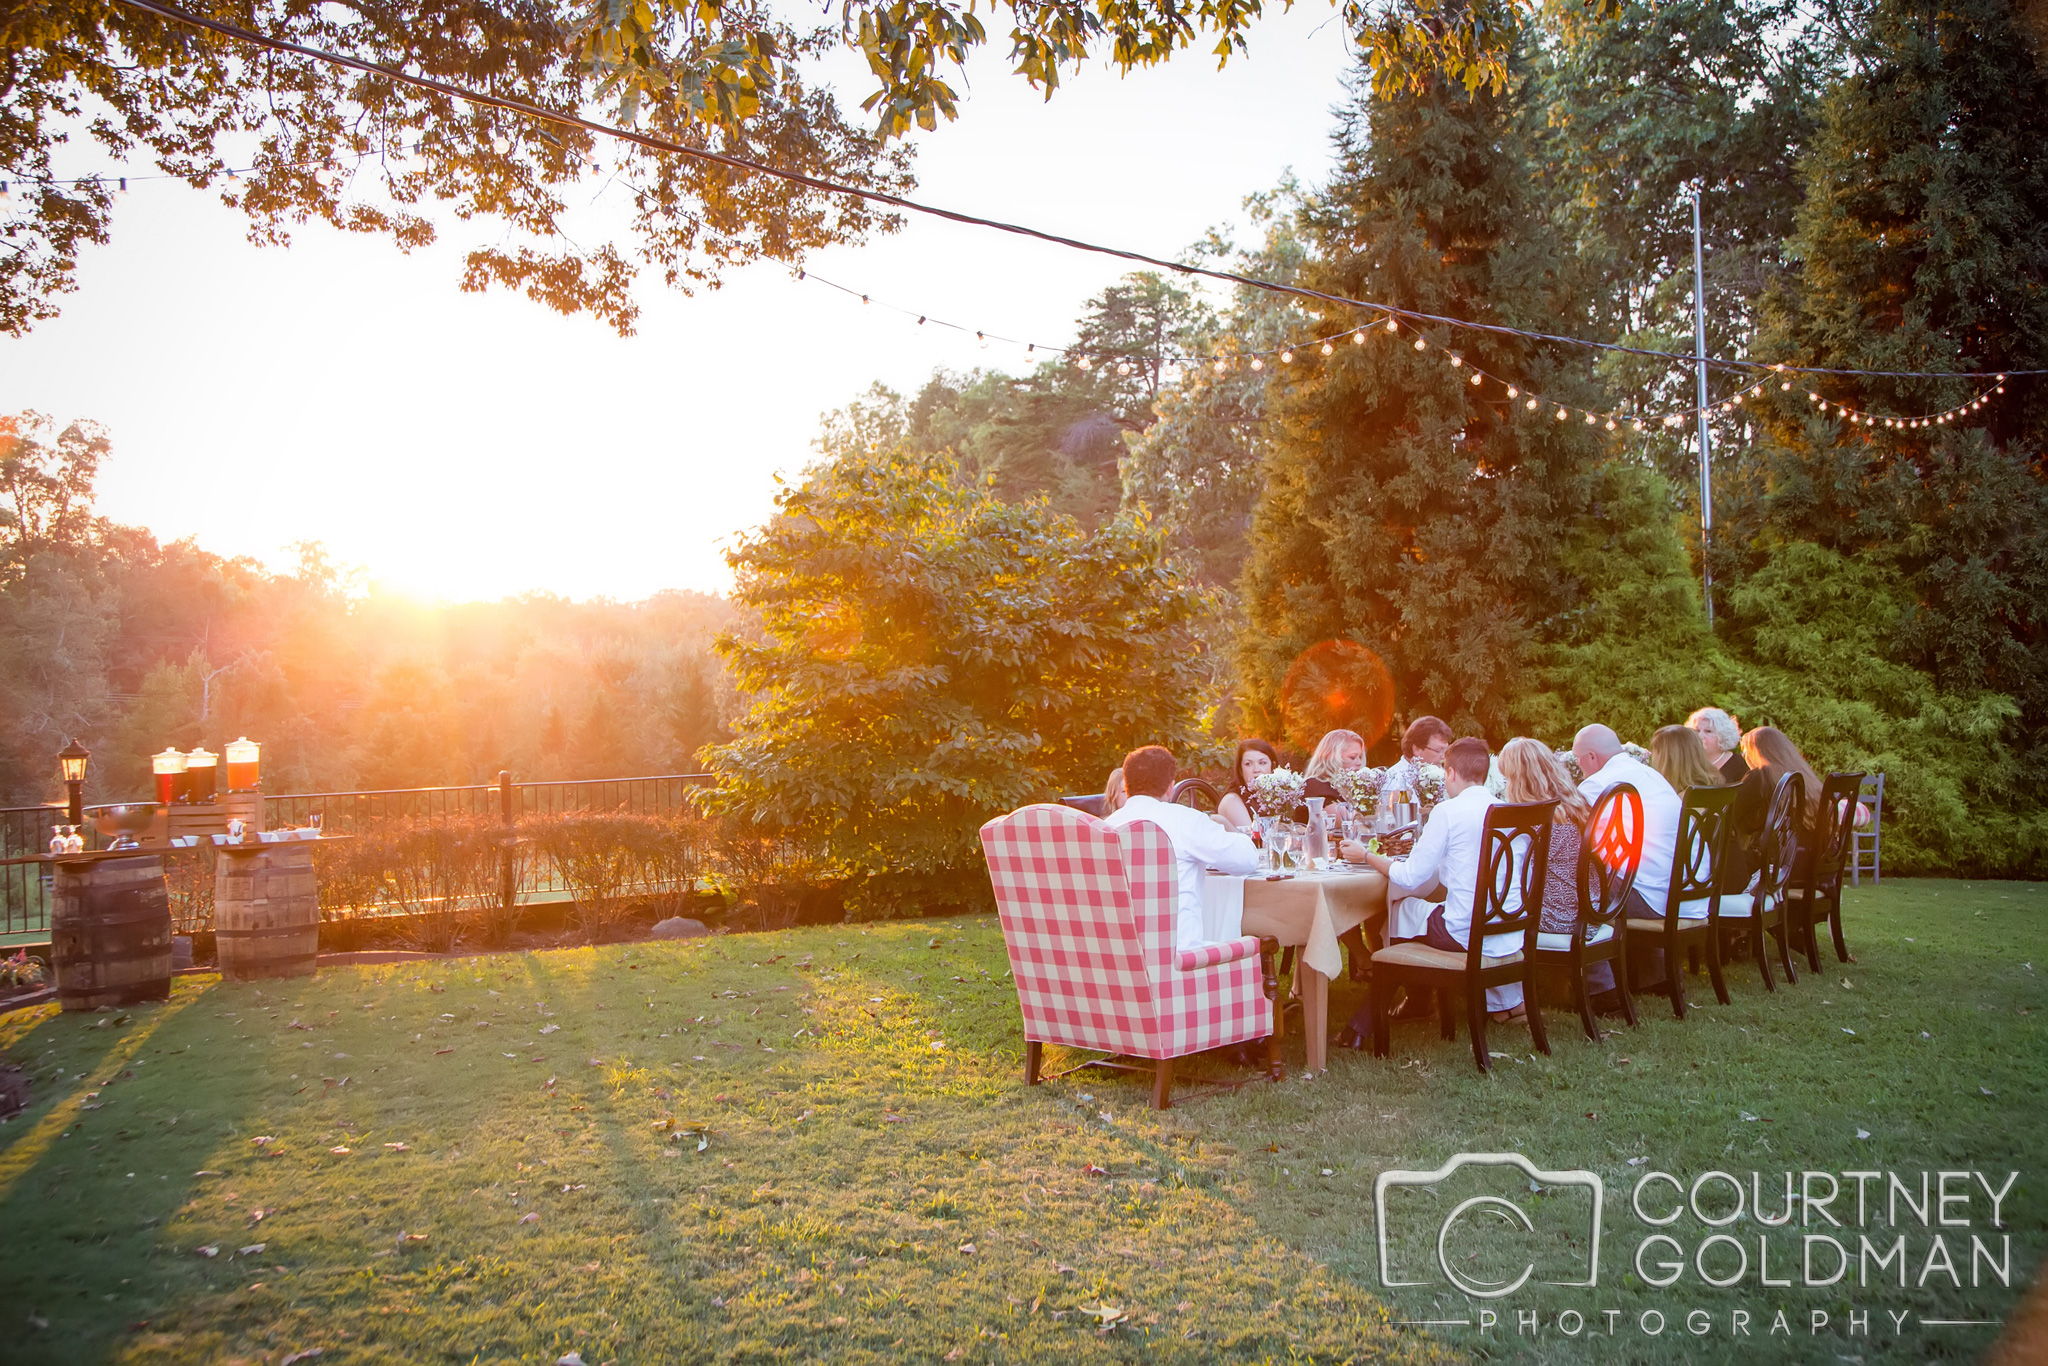 Backyard-Summer-Dinner-Birthday-in-Georgia-with-A-Divine-Event-by-Courtney-Goldman-Photography-10.jpg